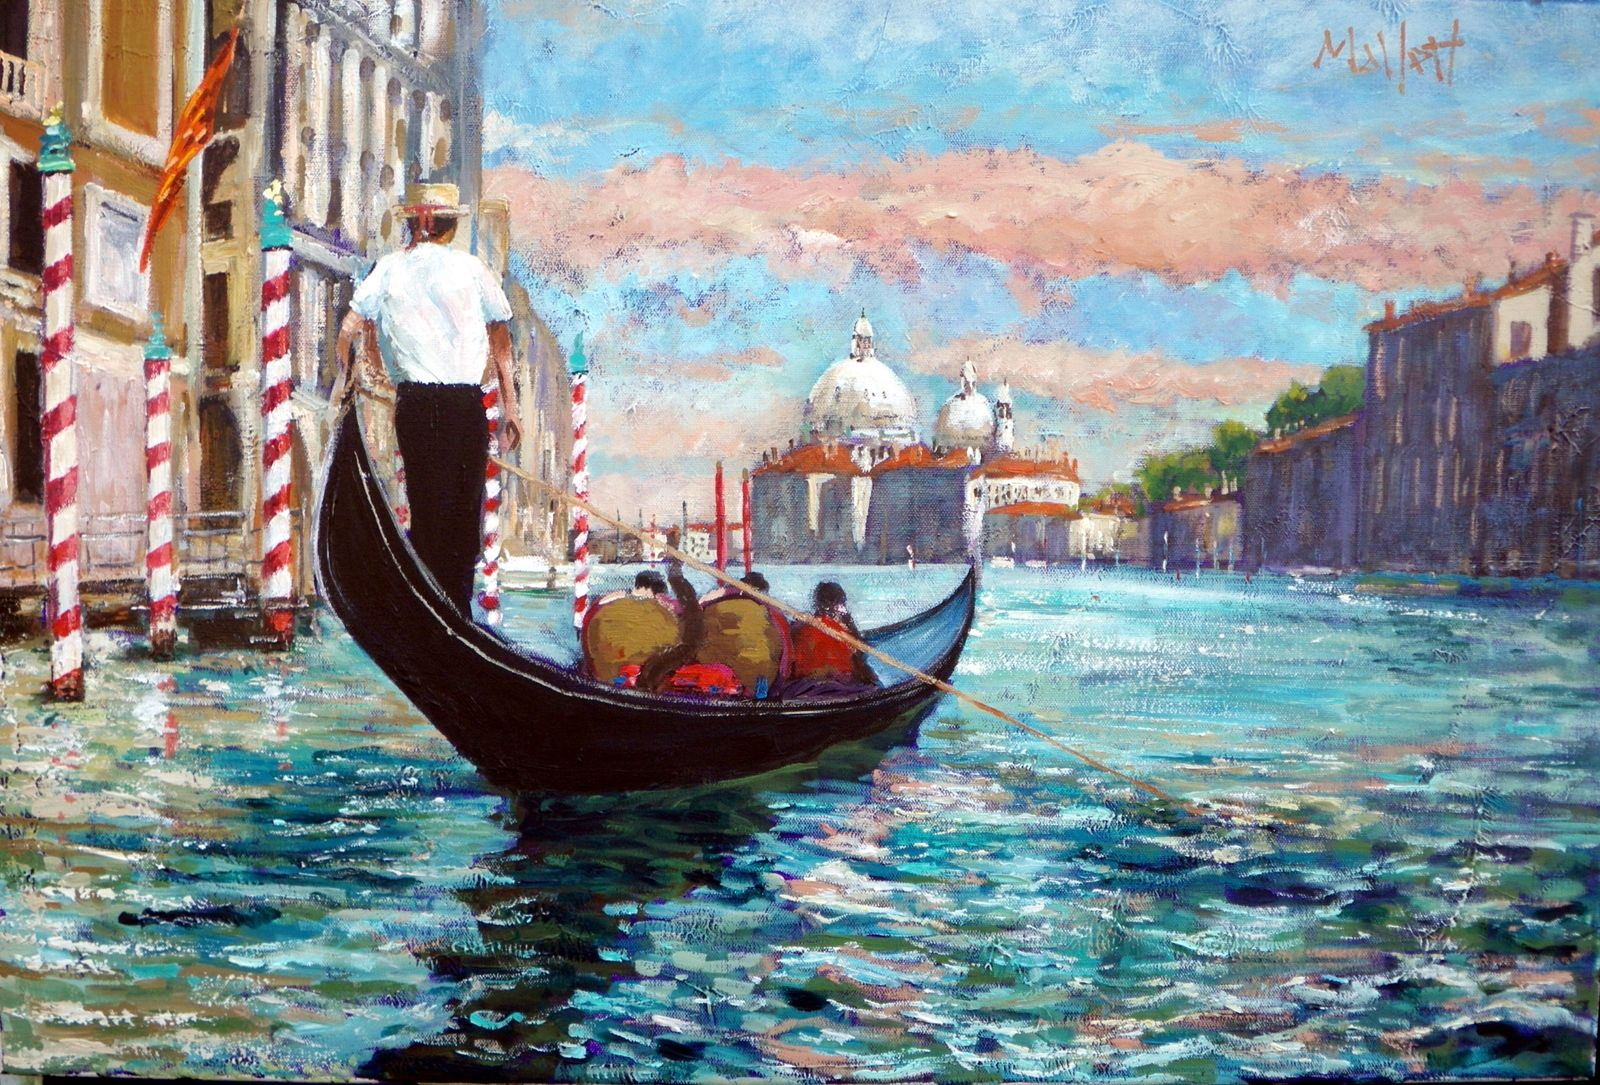 Timmy S Painting Of Venice The Grand Canal Venice Painting